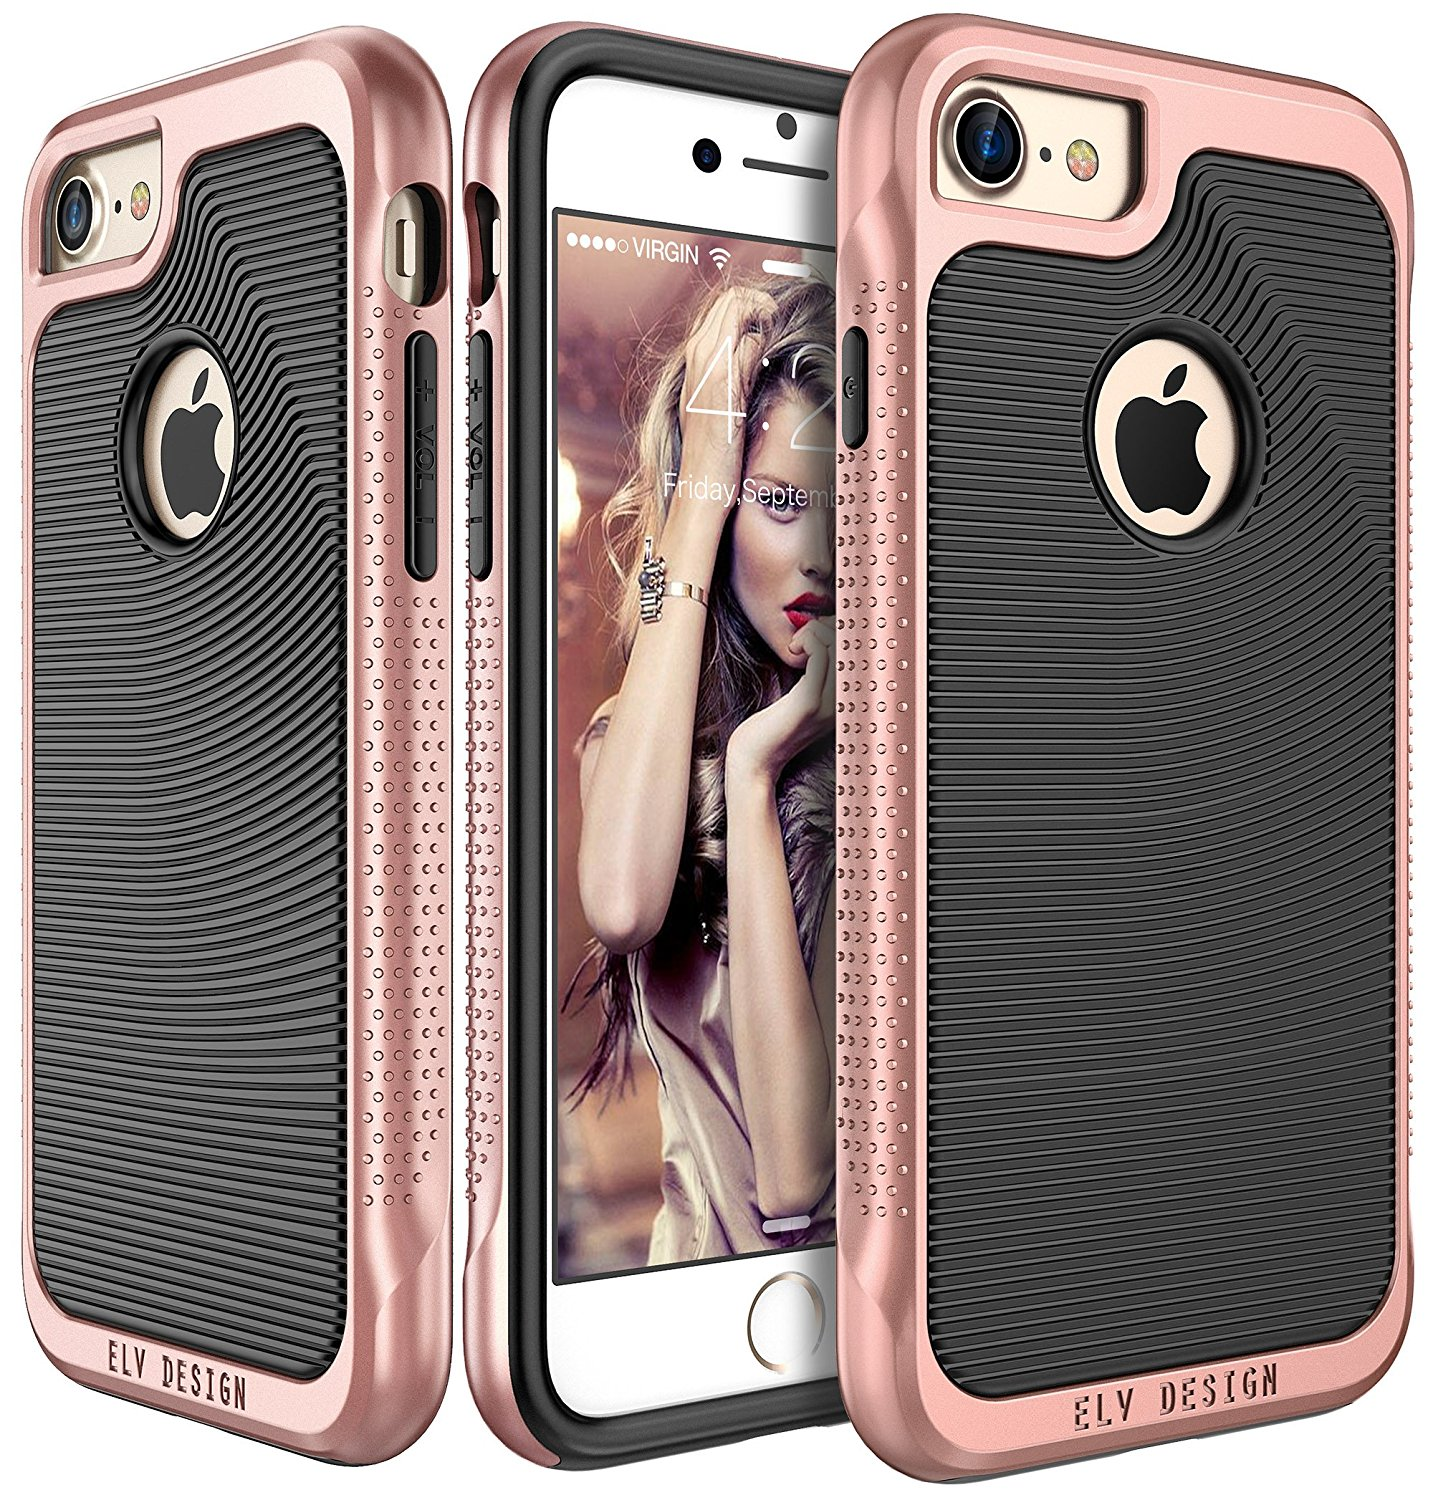 iPhone 7 Case, E LV iPhone 7 - Hybrid [Scratch/Dust Proof] Armor Defender Slim Shock-Absorption Bumper Case for Apple iPhone 7 - [BLACK/ROSE GOLD]